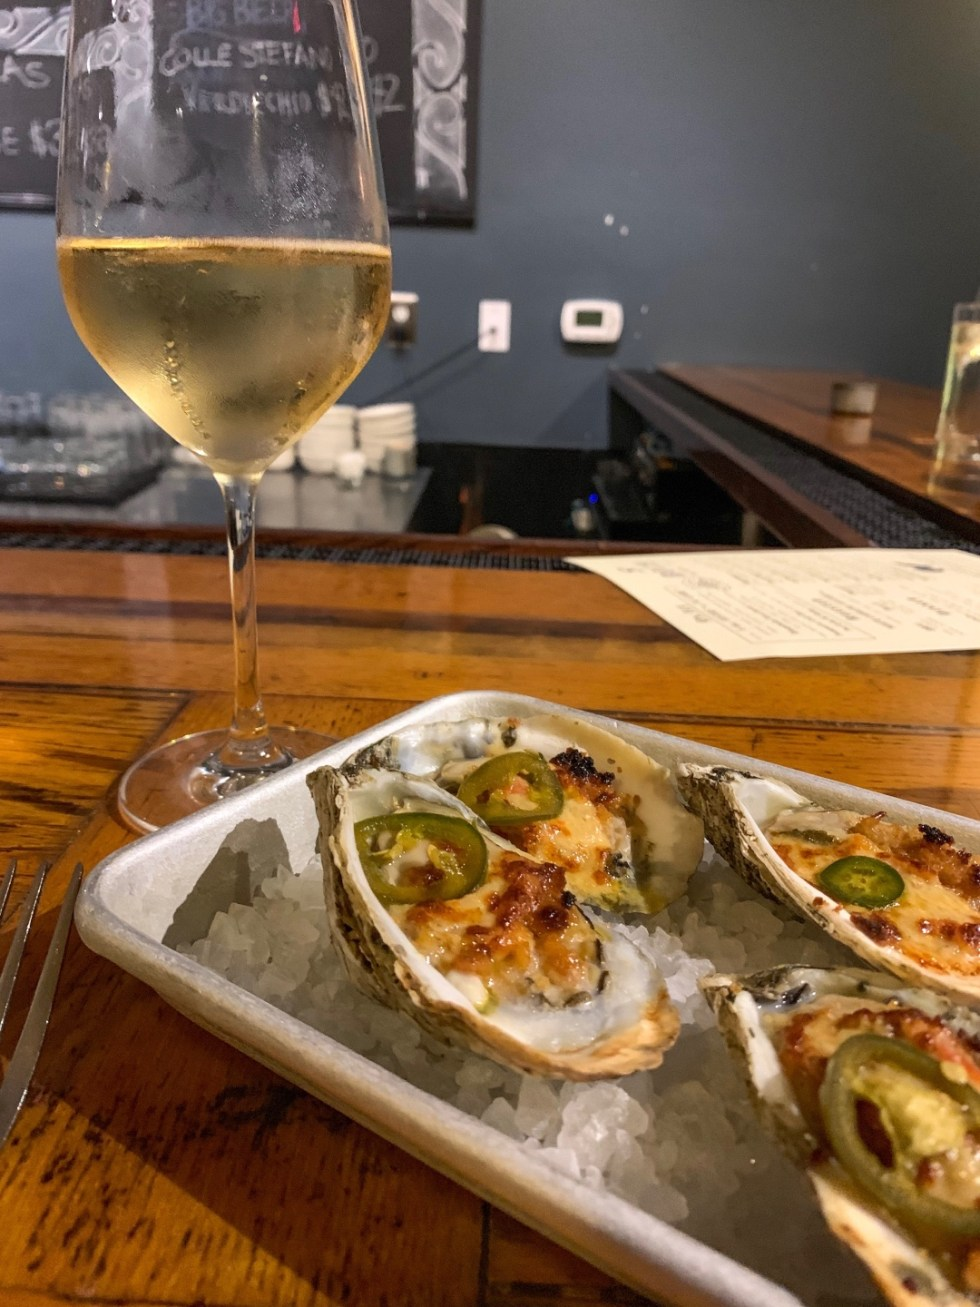 10 Iconic Dishes to Try in Raleigh - I'm Fixin' To - @imfixintoblog } Best Food in Raleigh NC by popular NC lifestyle blog, I'm Fixin' To: image of oysters and a glass of white wine.